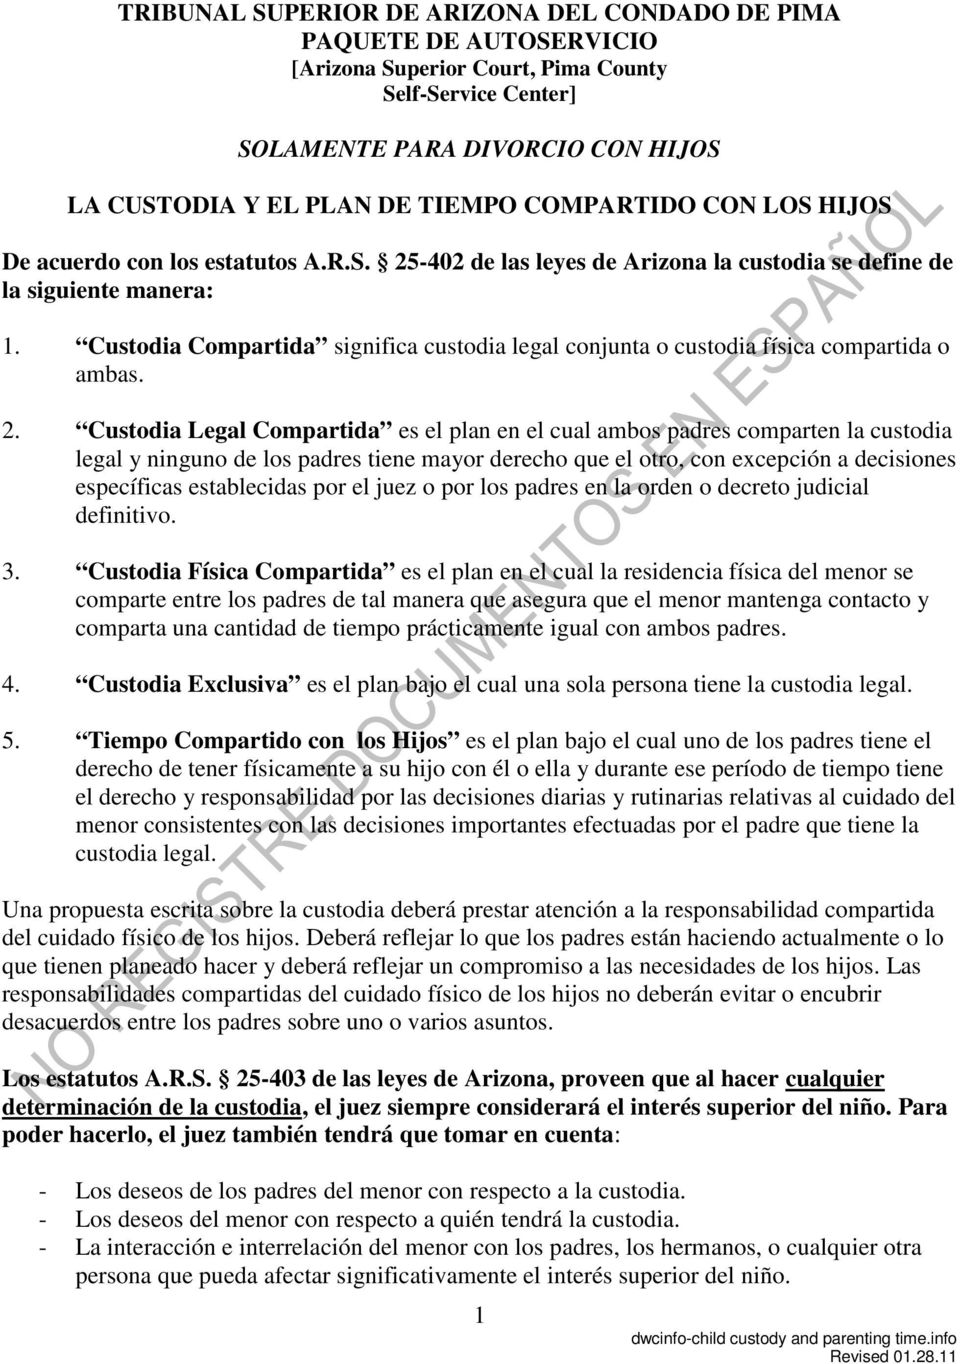 Custodia Compartida significa custodia legal conjunta o custodia física compartida o ambas. 2.